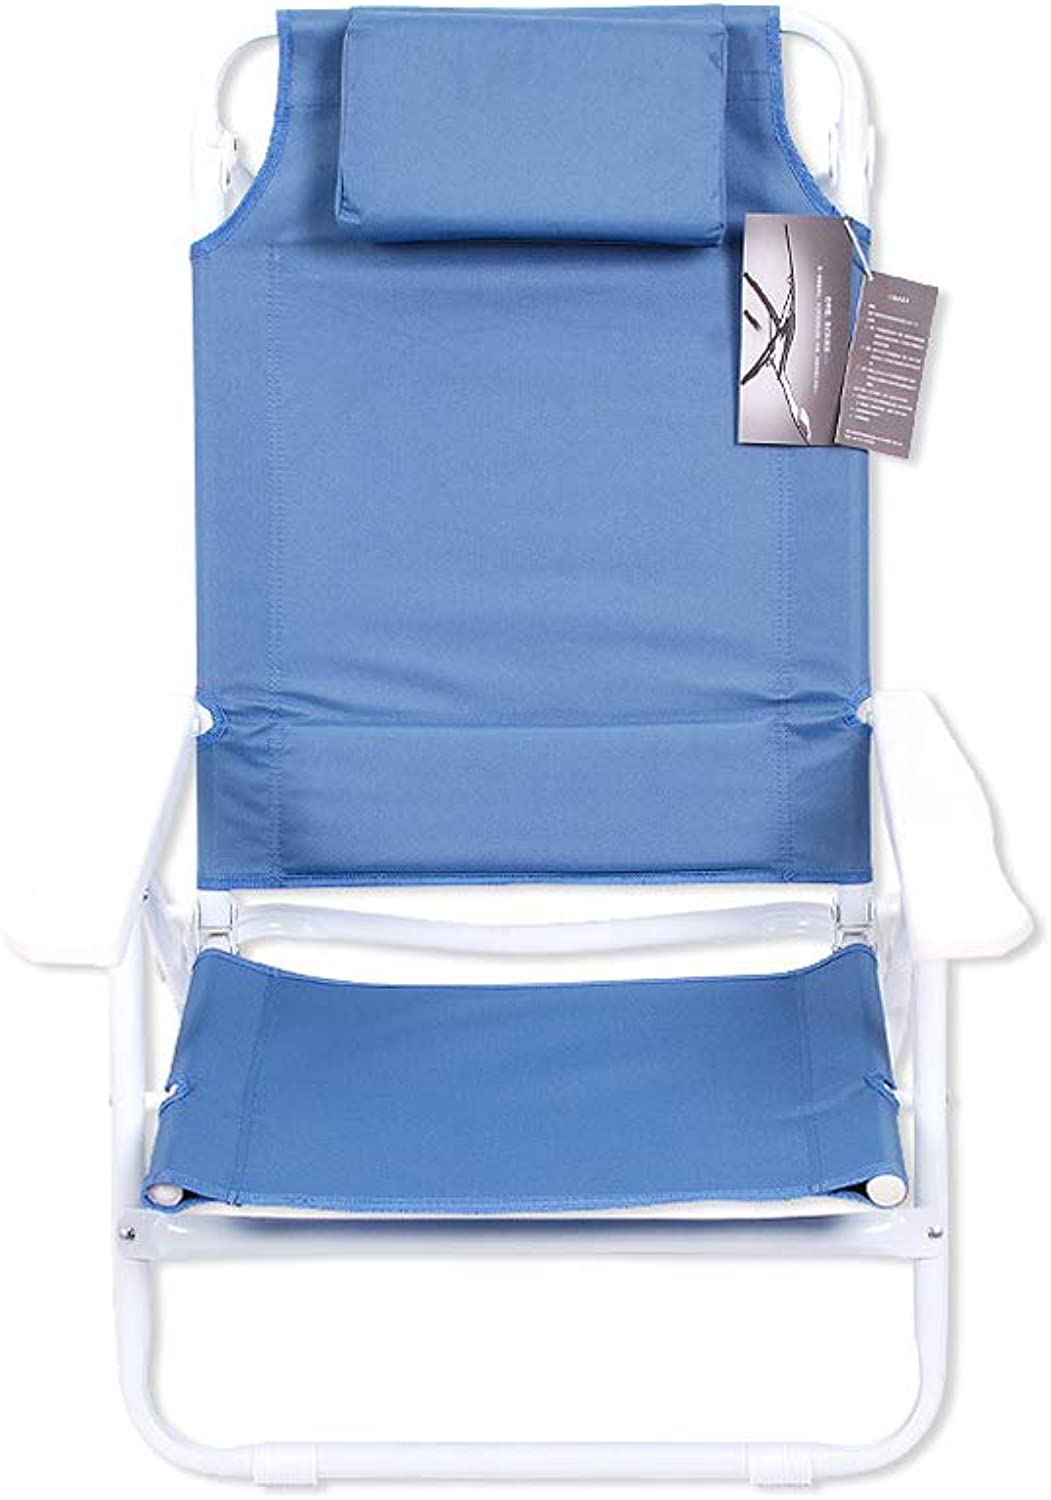 Simple Office Folding Chair Lunch Break Recliner Aluminum Alloy Portable nap Bed